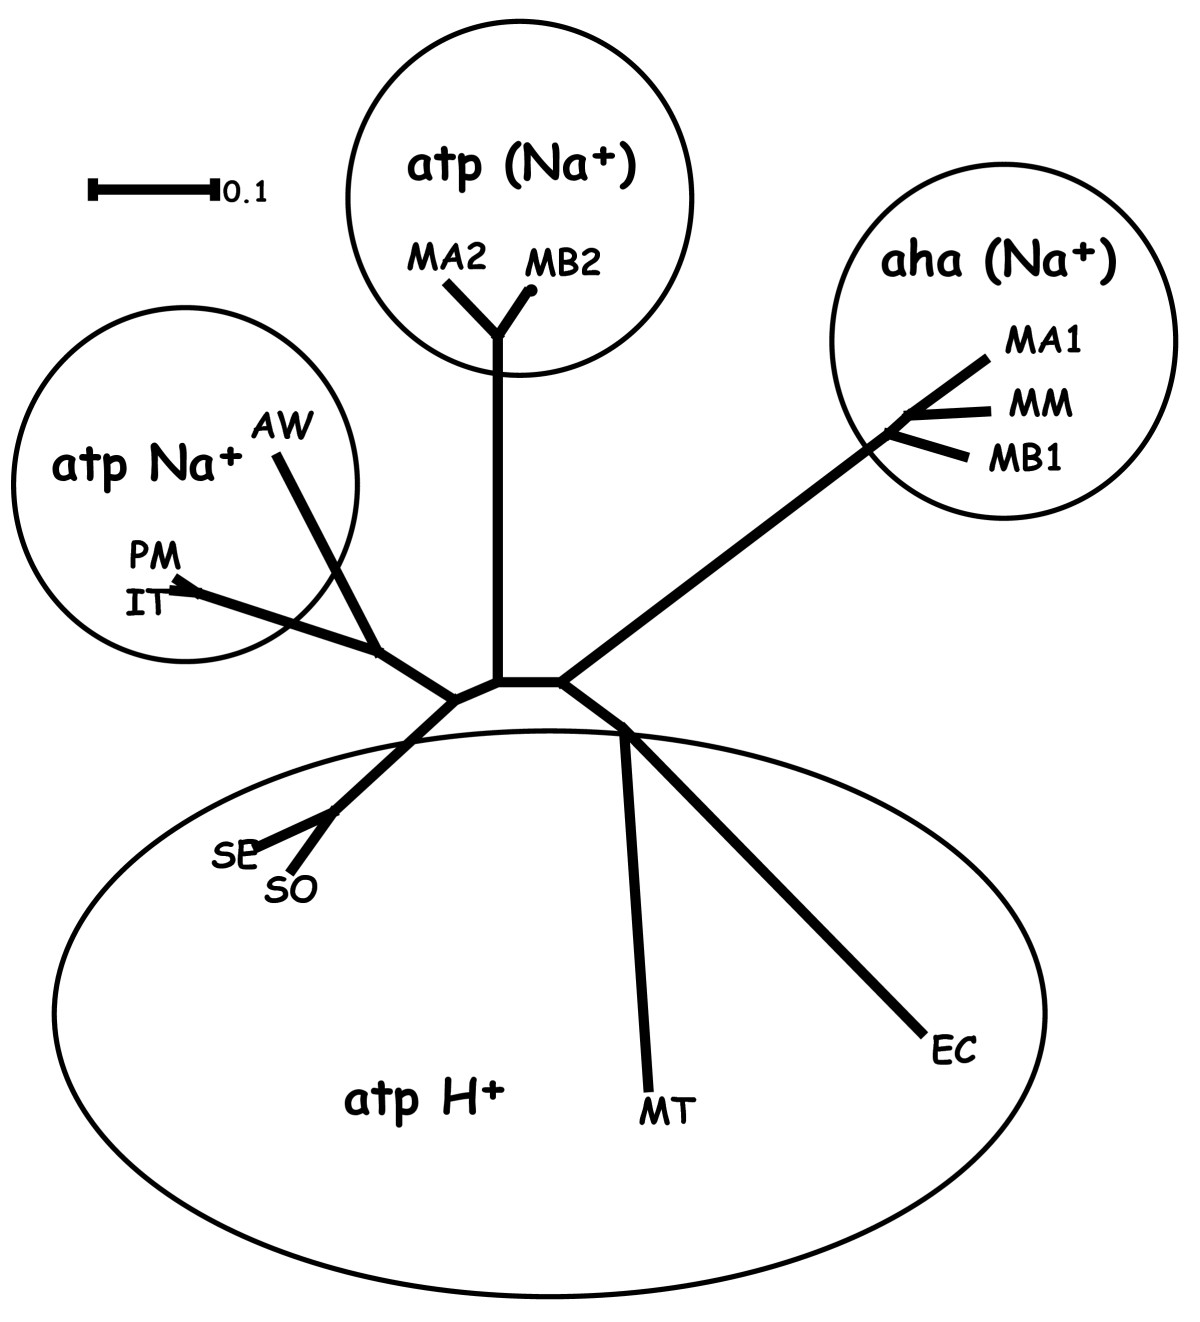 https://static-content.springer.com/image/art%3A10.1186%2F1471-2180-10-62/MediaObjects/12866_2009_Article_1018_Fig9_HTML.jpg